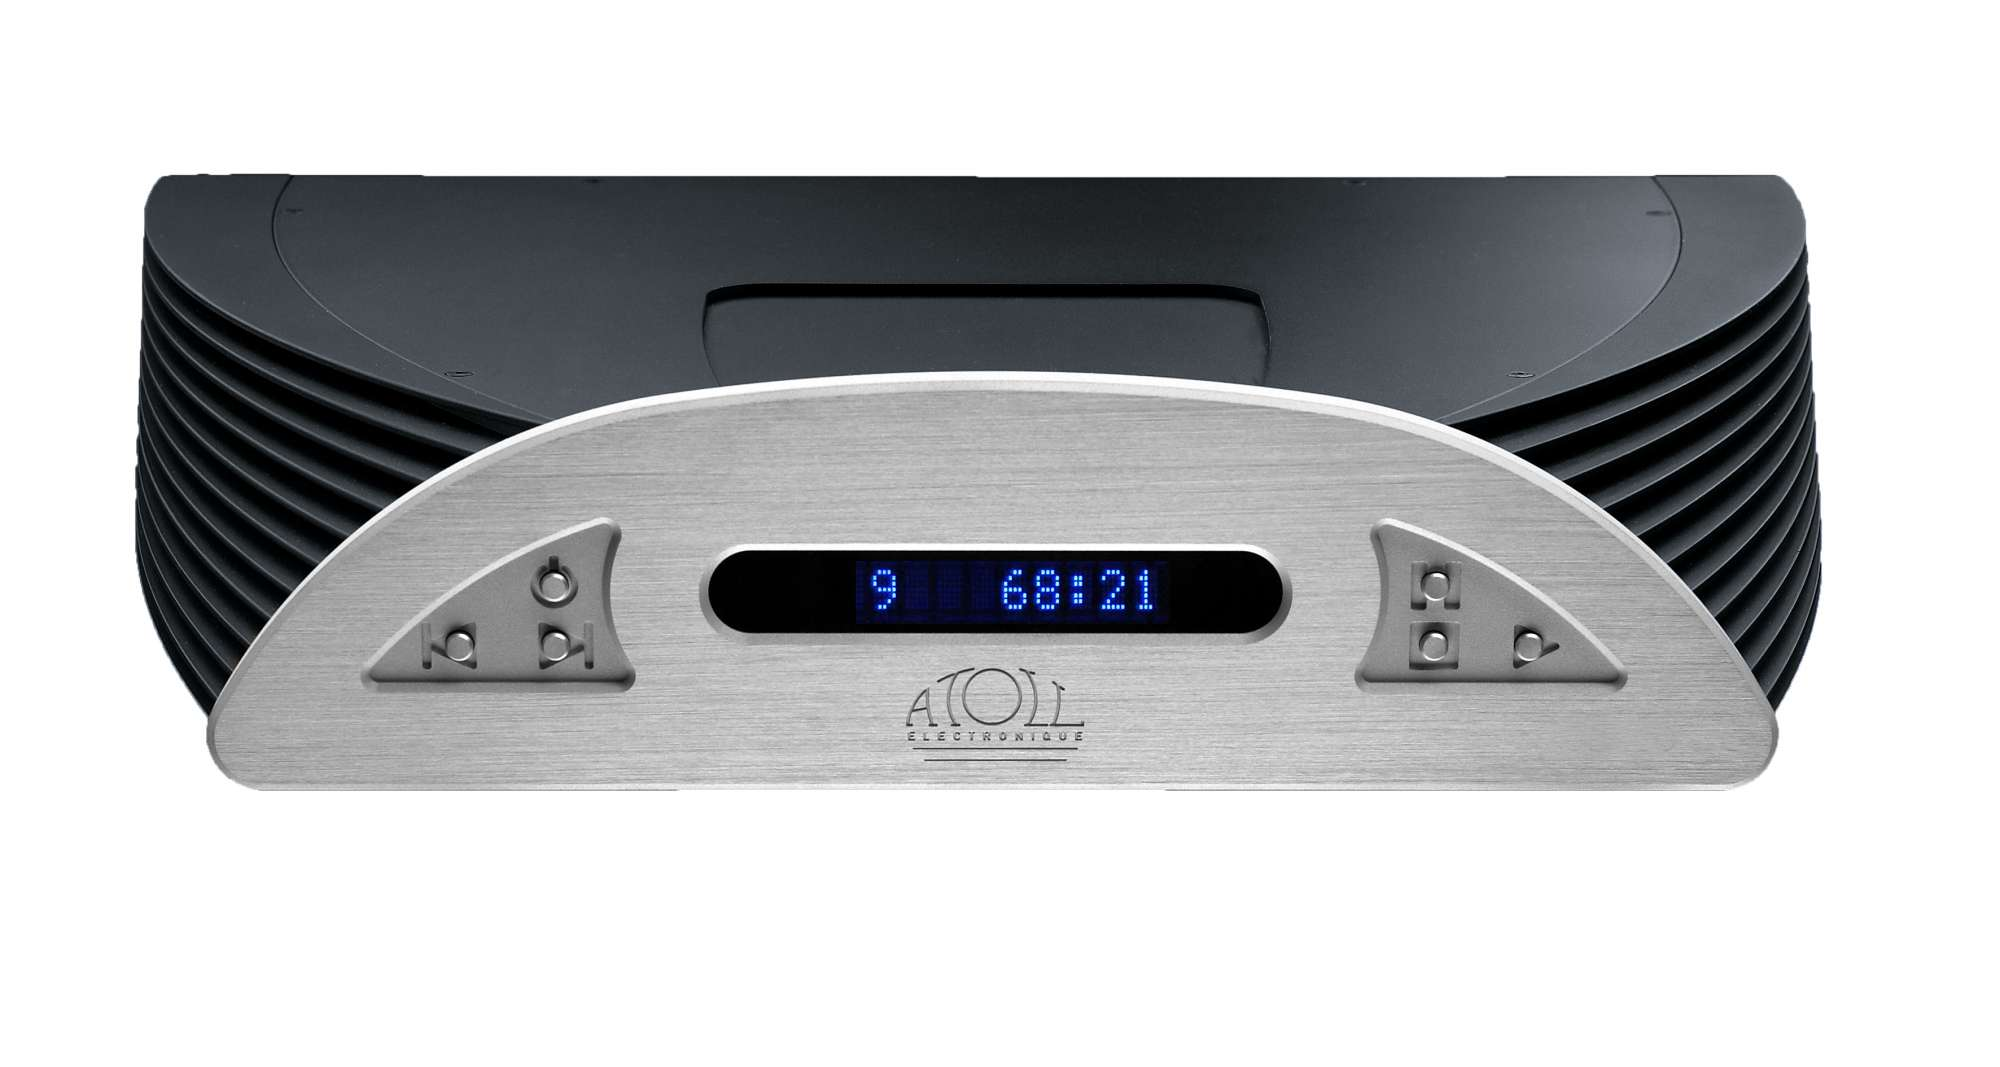 Atoll DR 400 SE CD-Transport